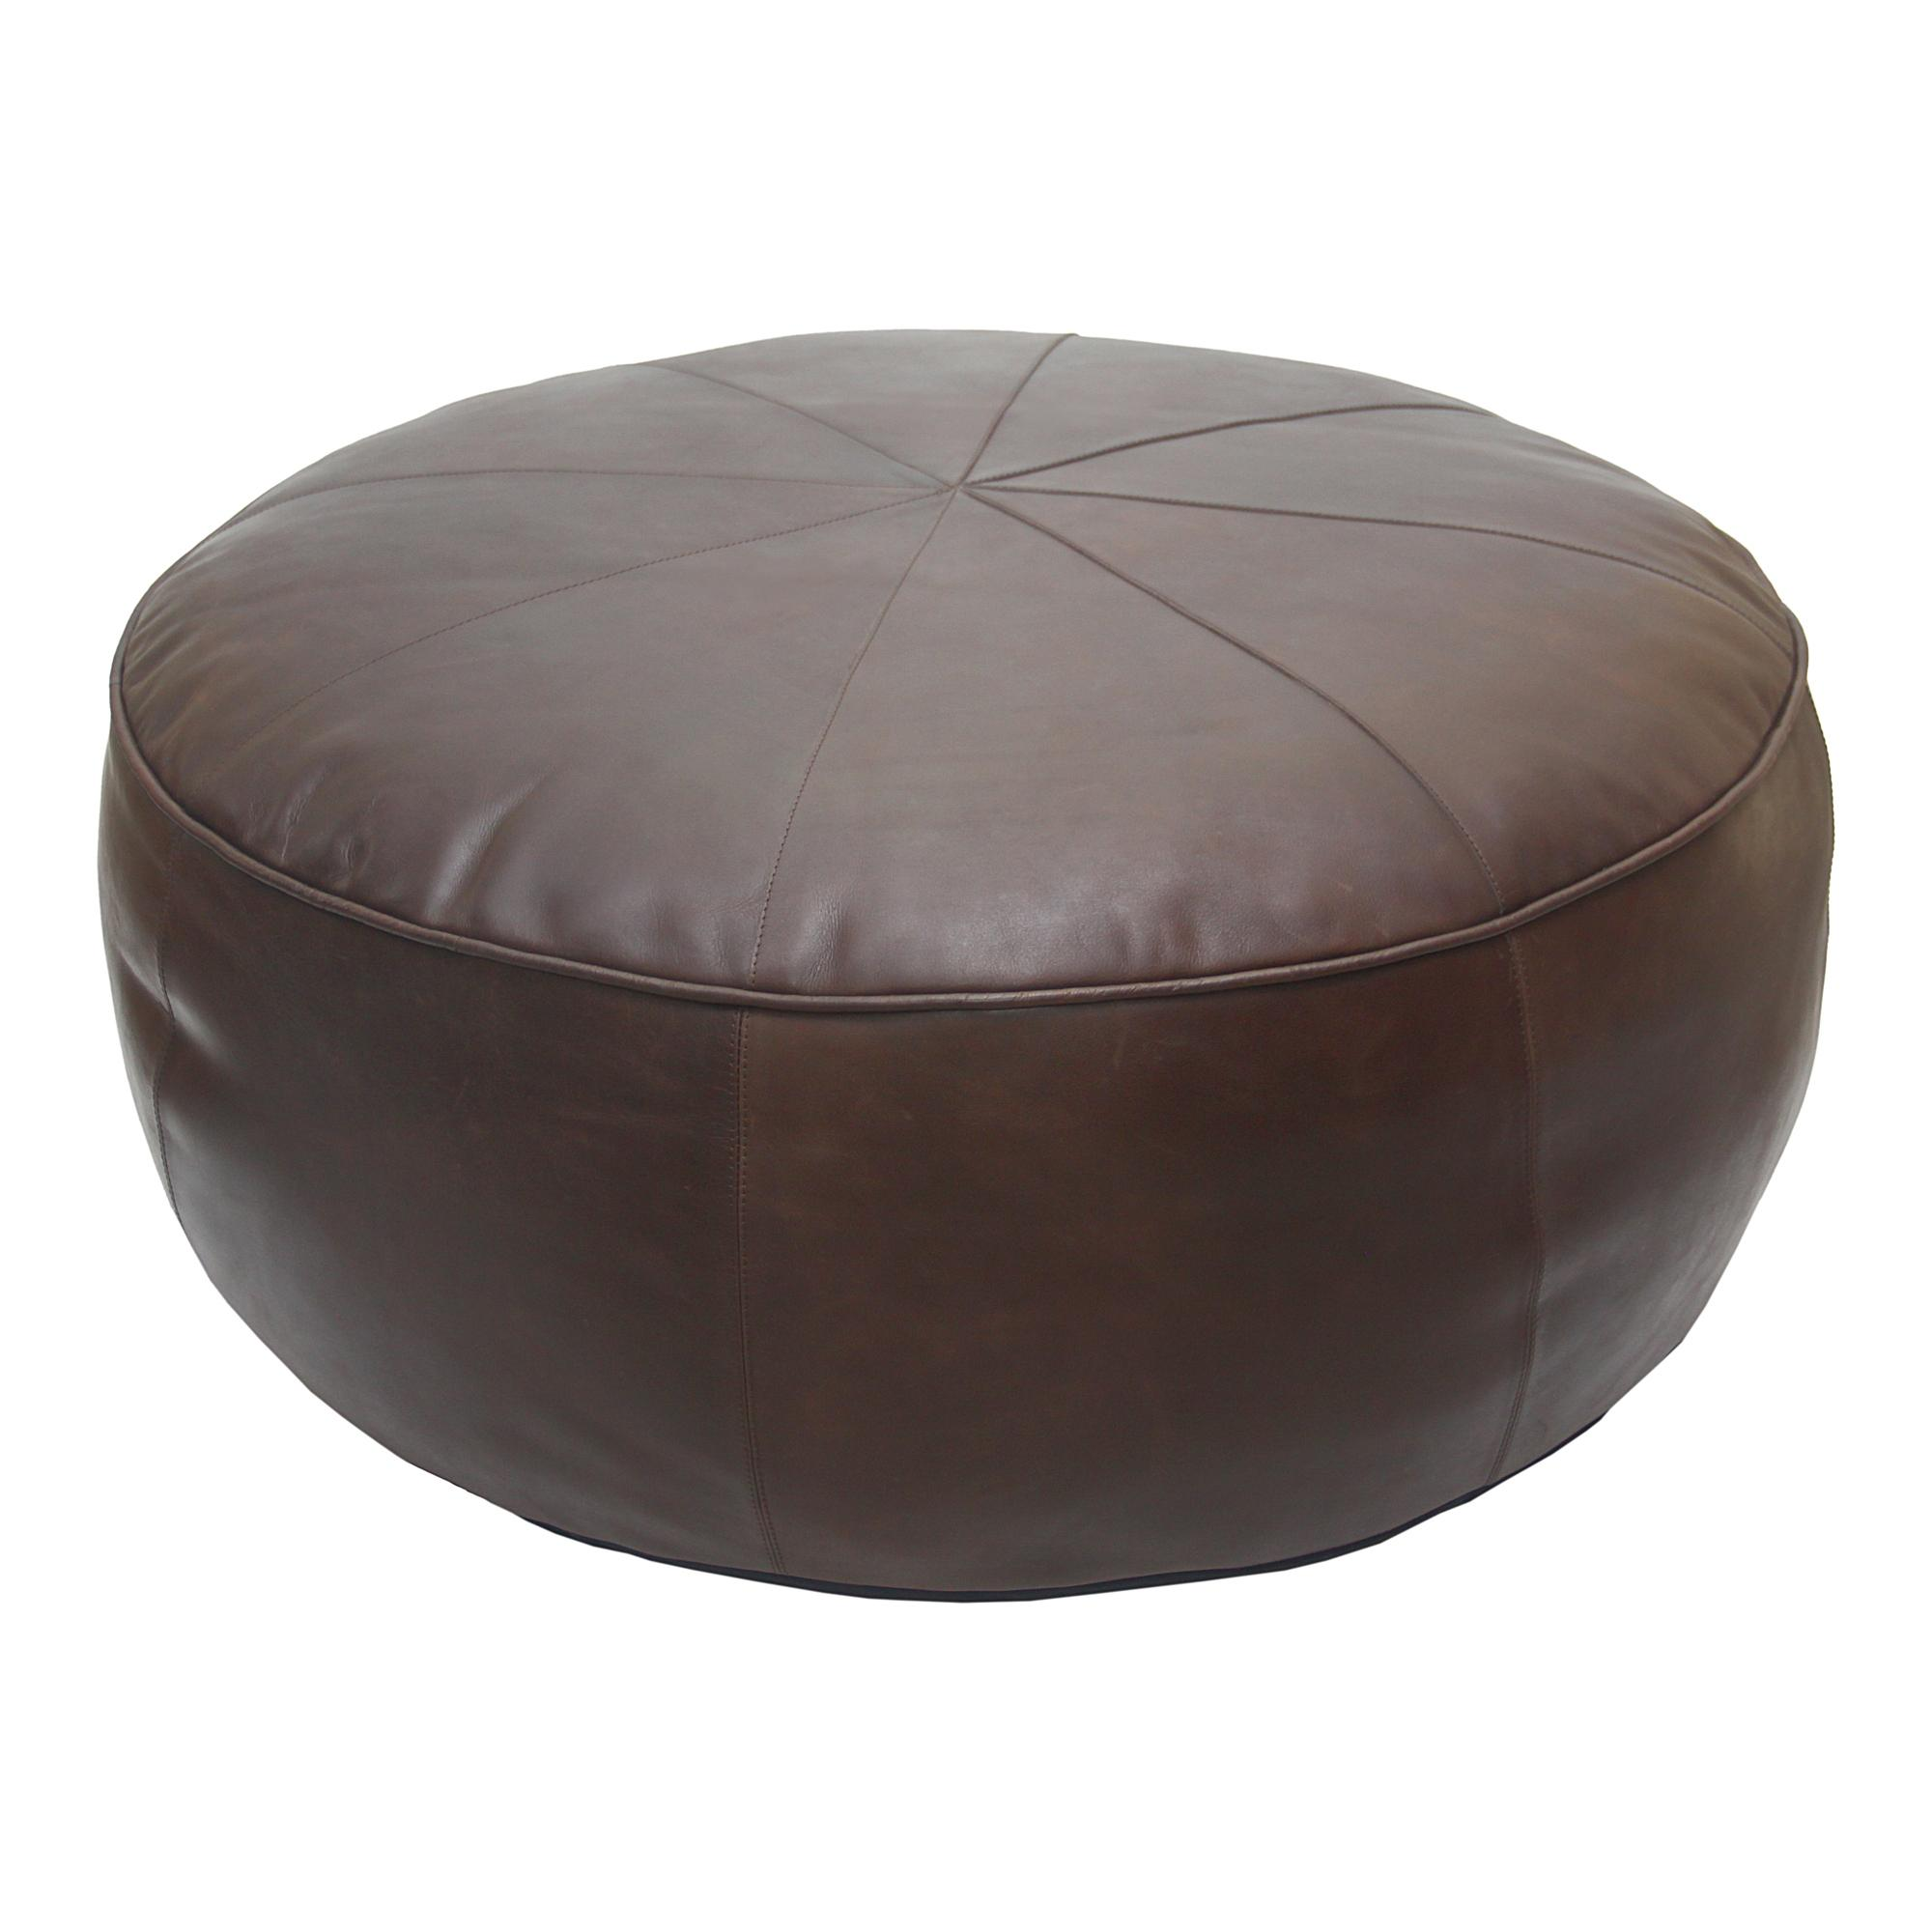 Miraculous Moes Home Arthuro Dark Brown Leather Round Ottoman Ncnpc Chair Design For Home Ncnpcorg